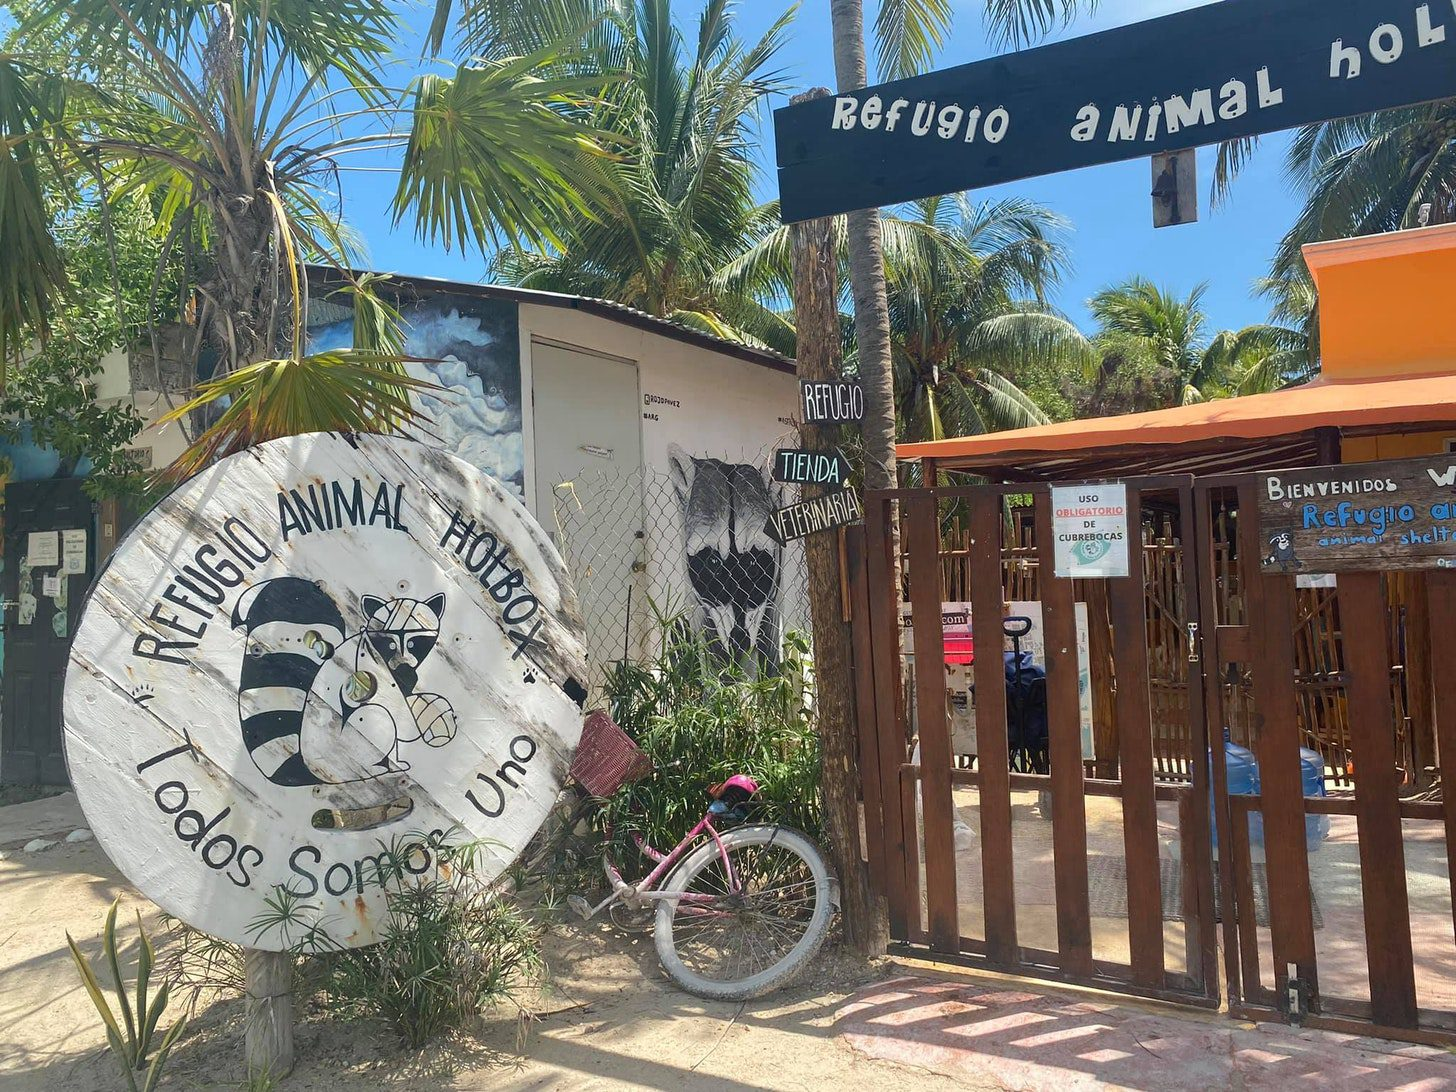 Volunteering at a Woman-Run Animal Shelter in Mexico